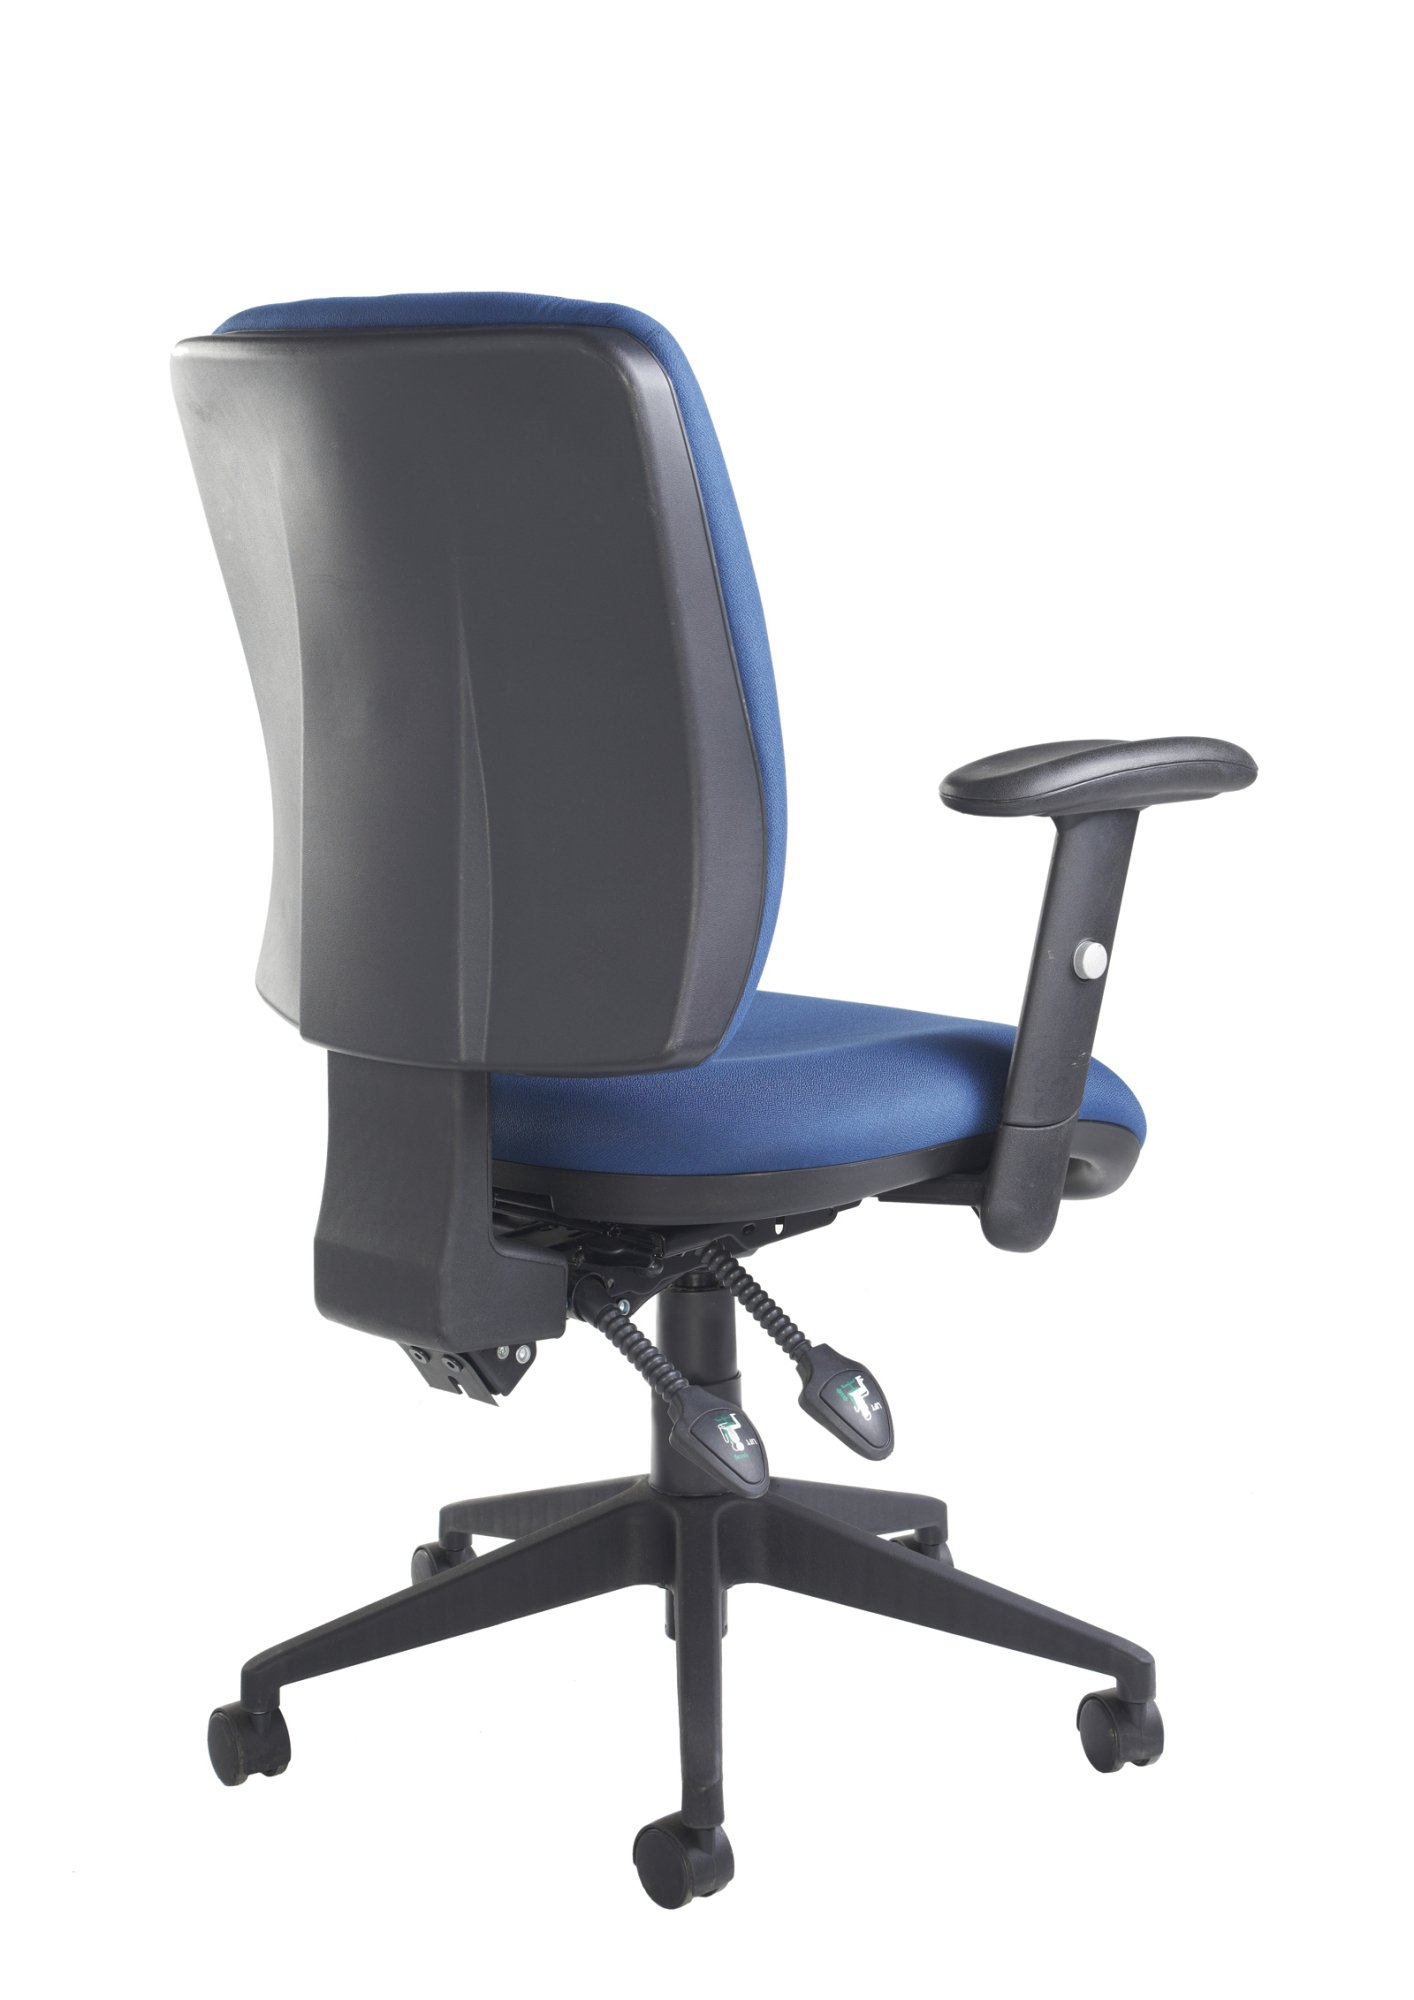 Mode 100 Posture Medium Back Contract Chair